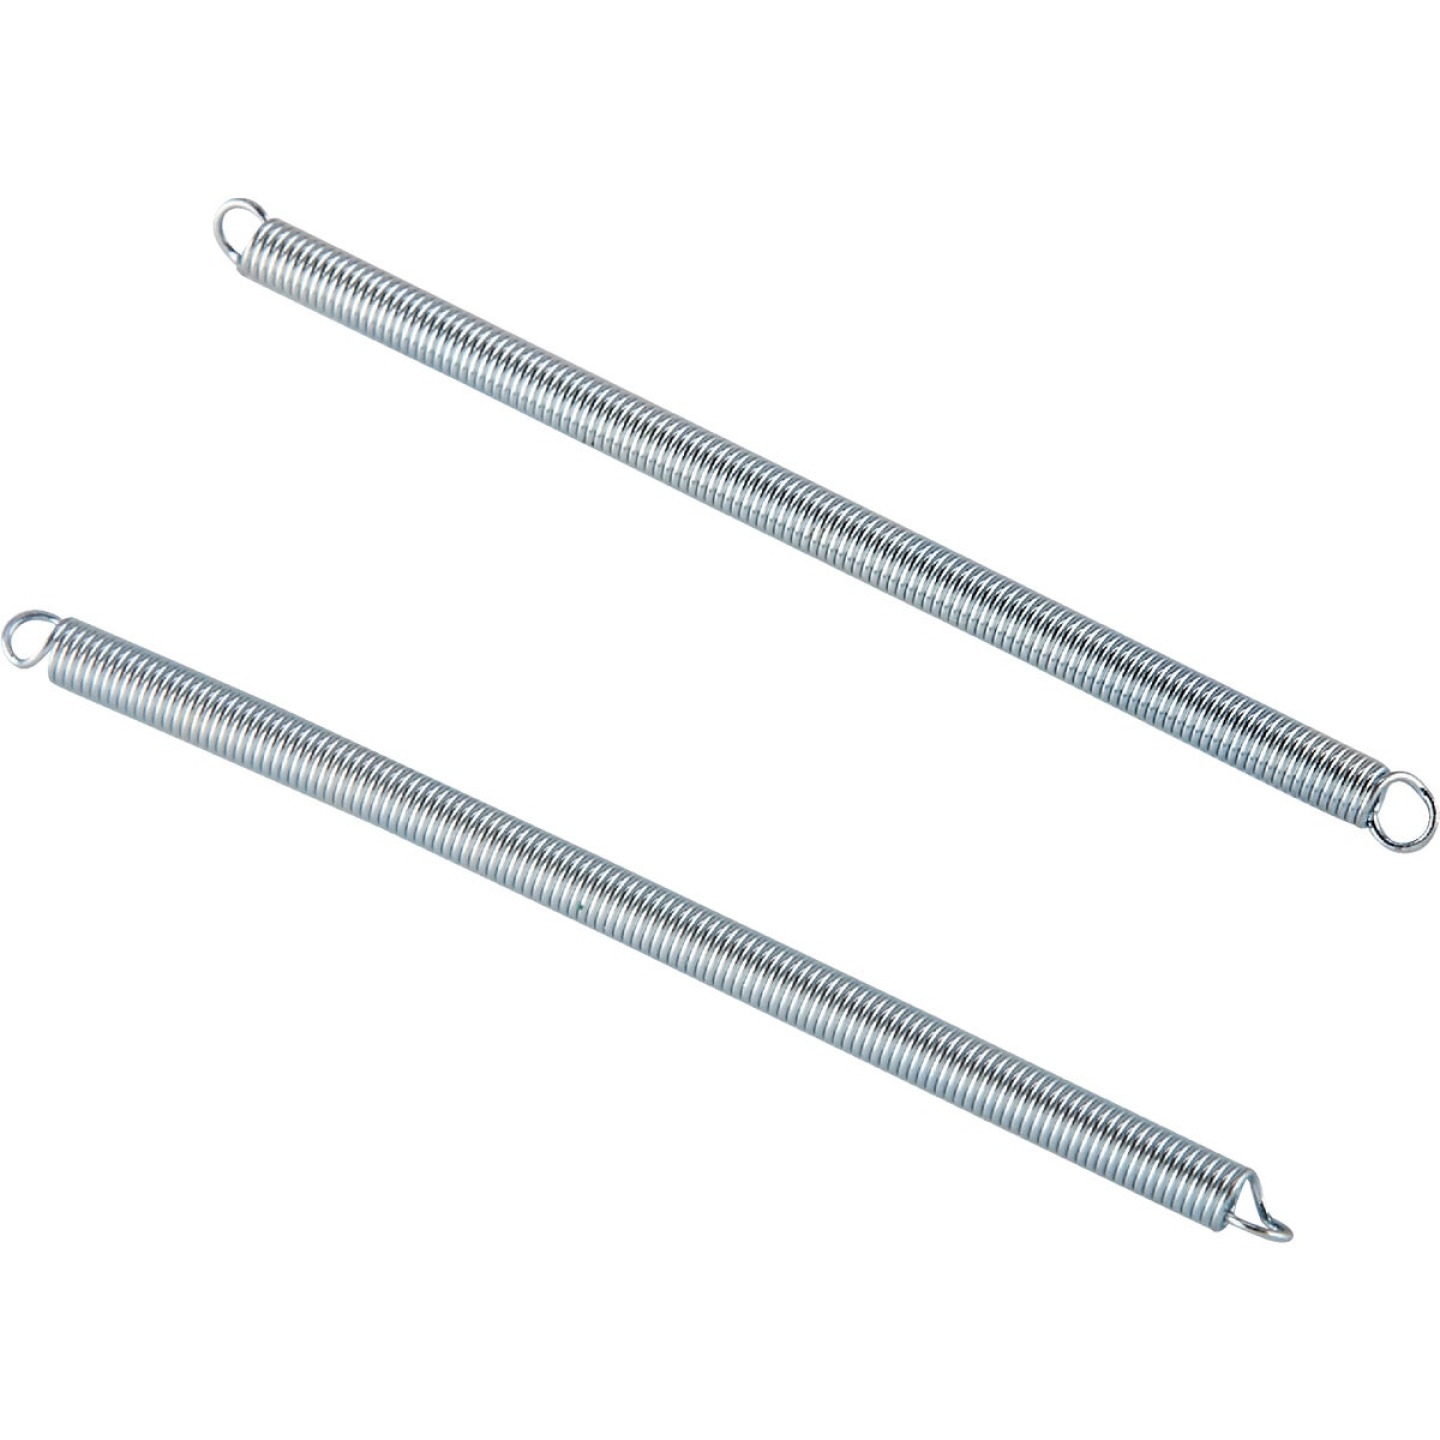 Century Spring 16-1/2 In. x 9/16 In. Extension Spring (1 Count) Image 1